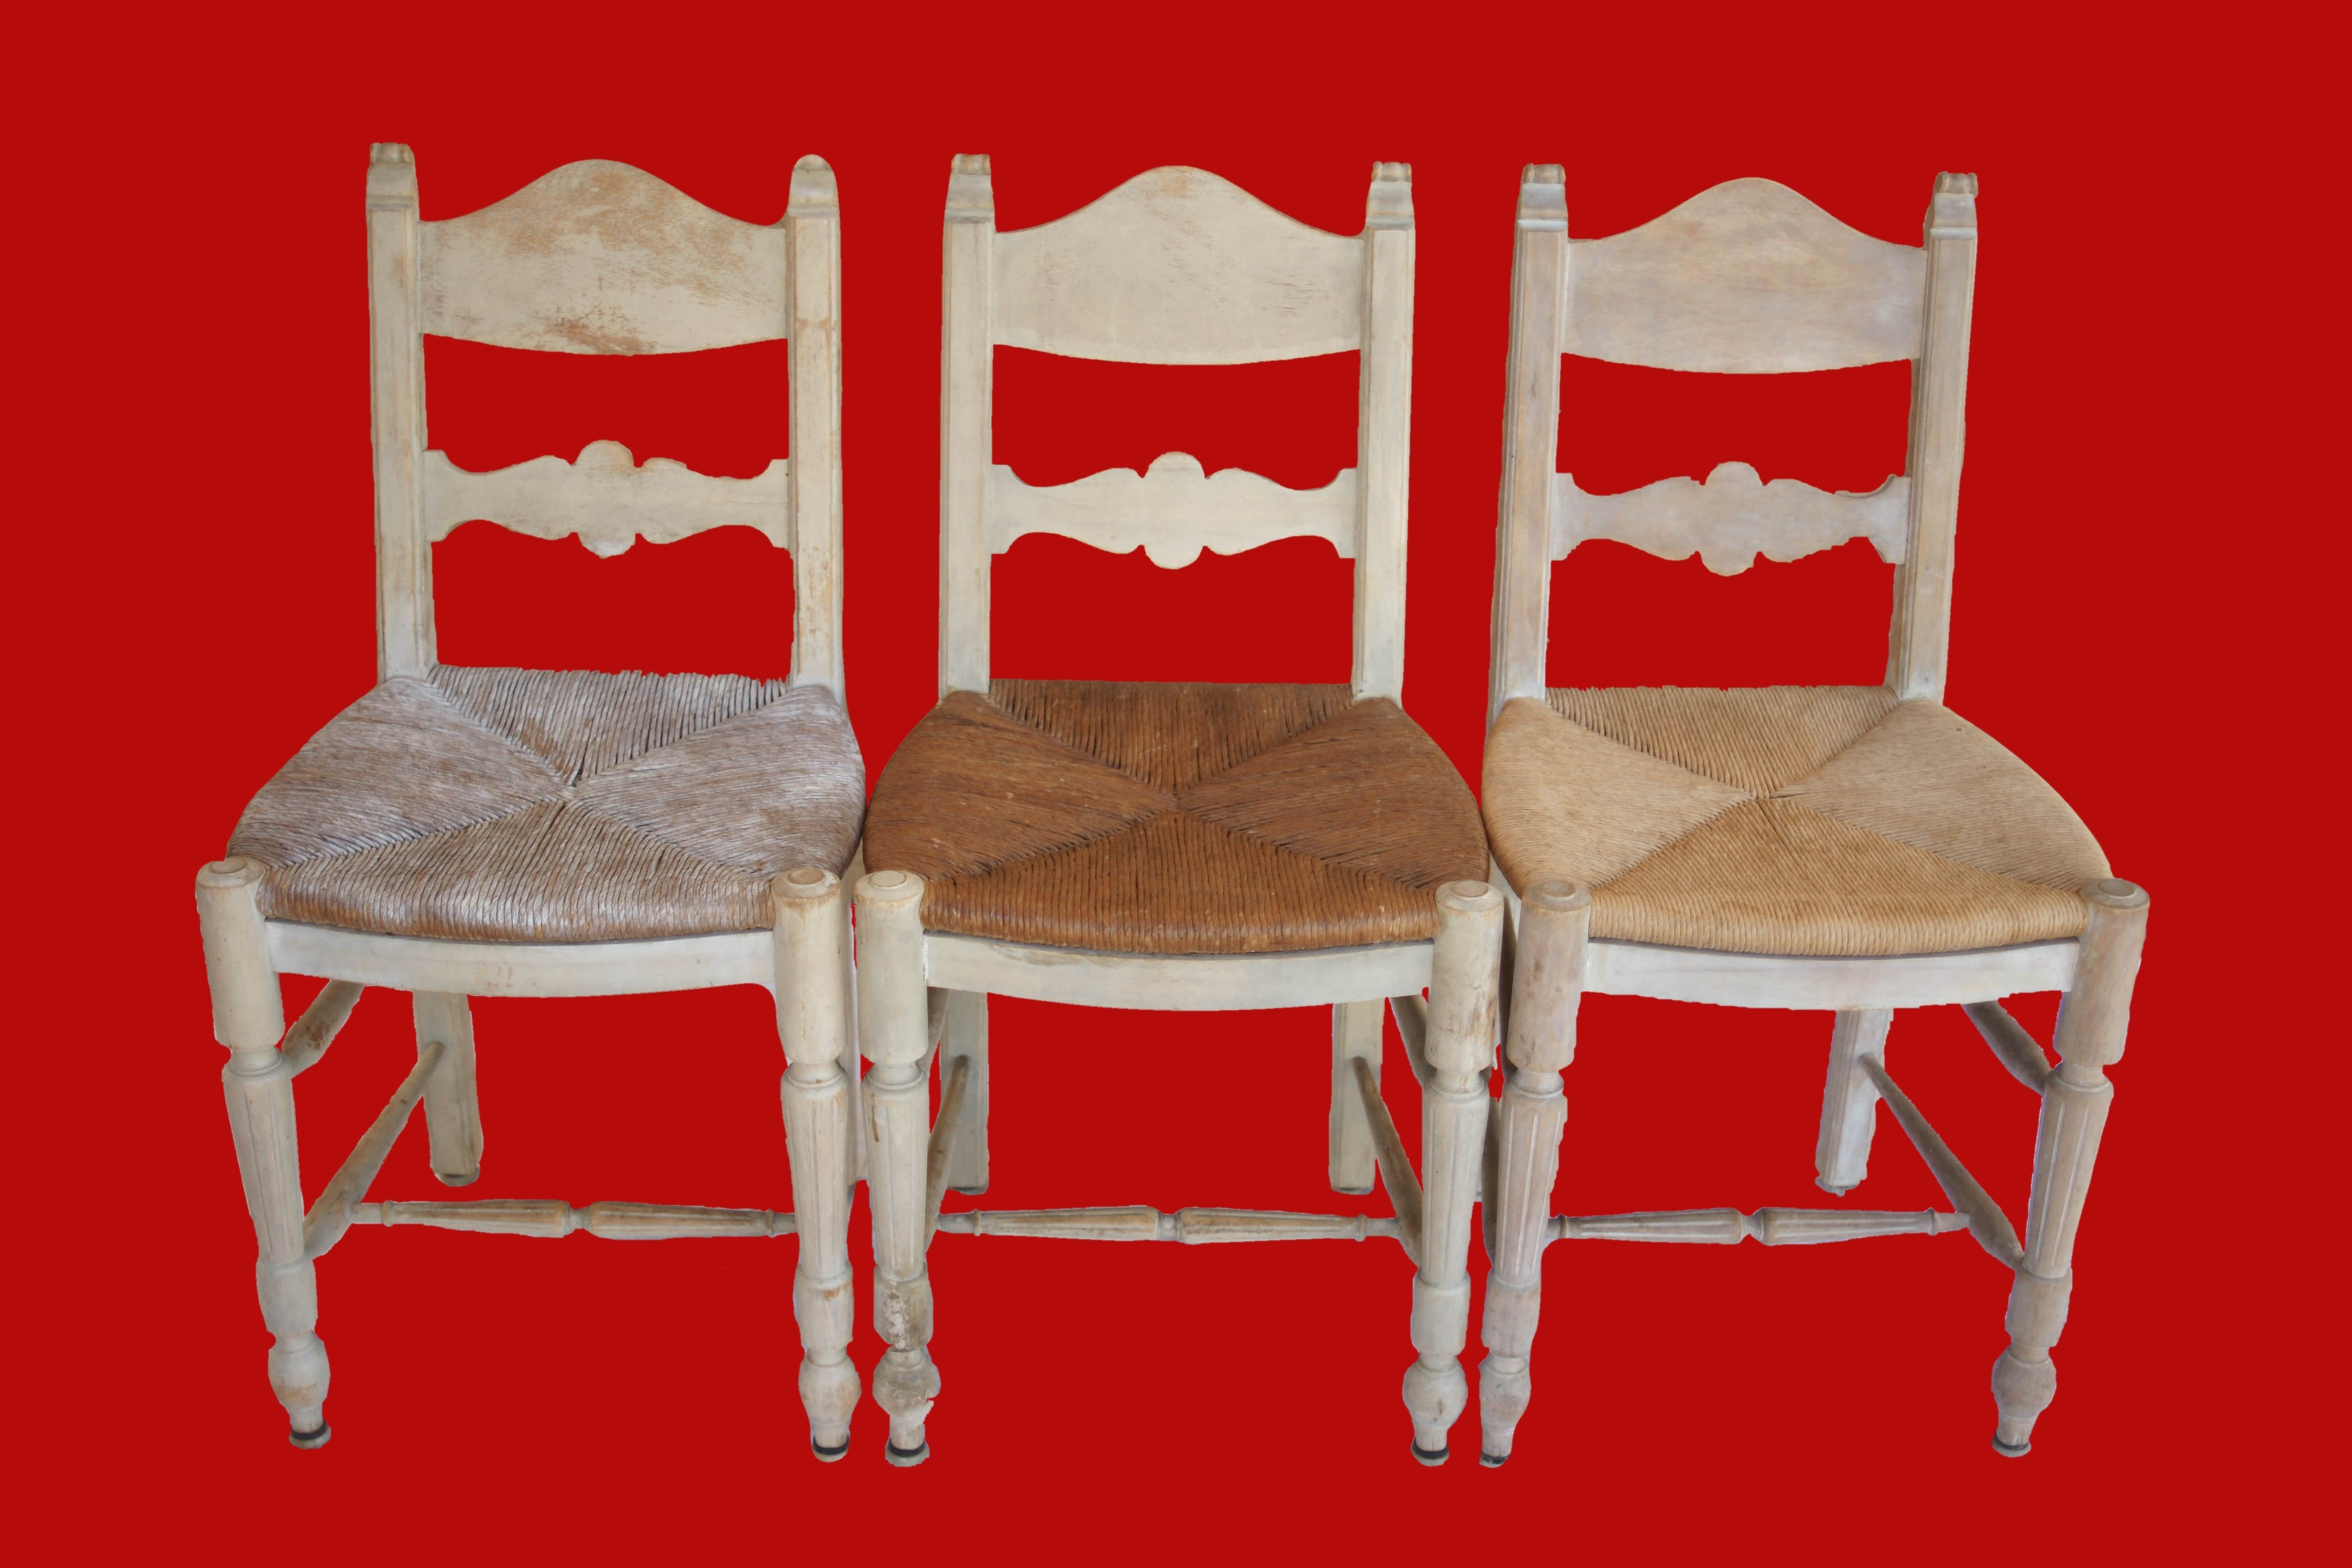 3 Rush Chairs Bleached Wood Frames